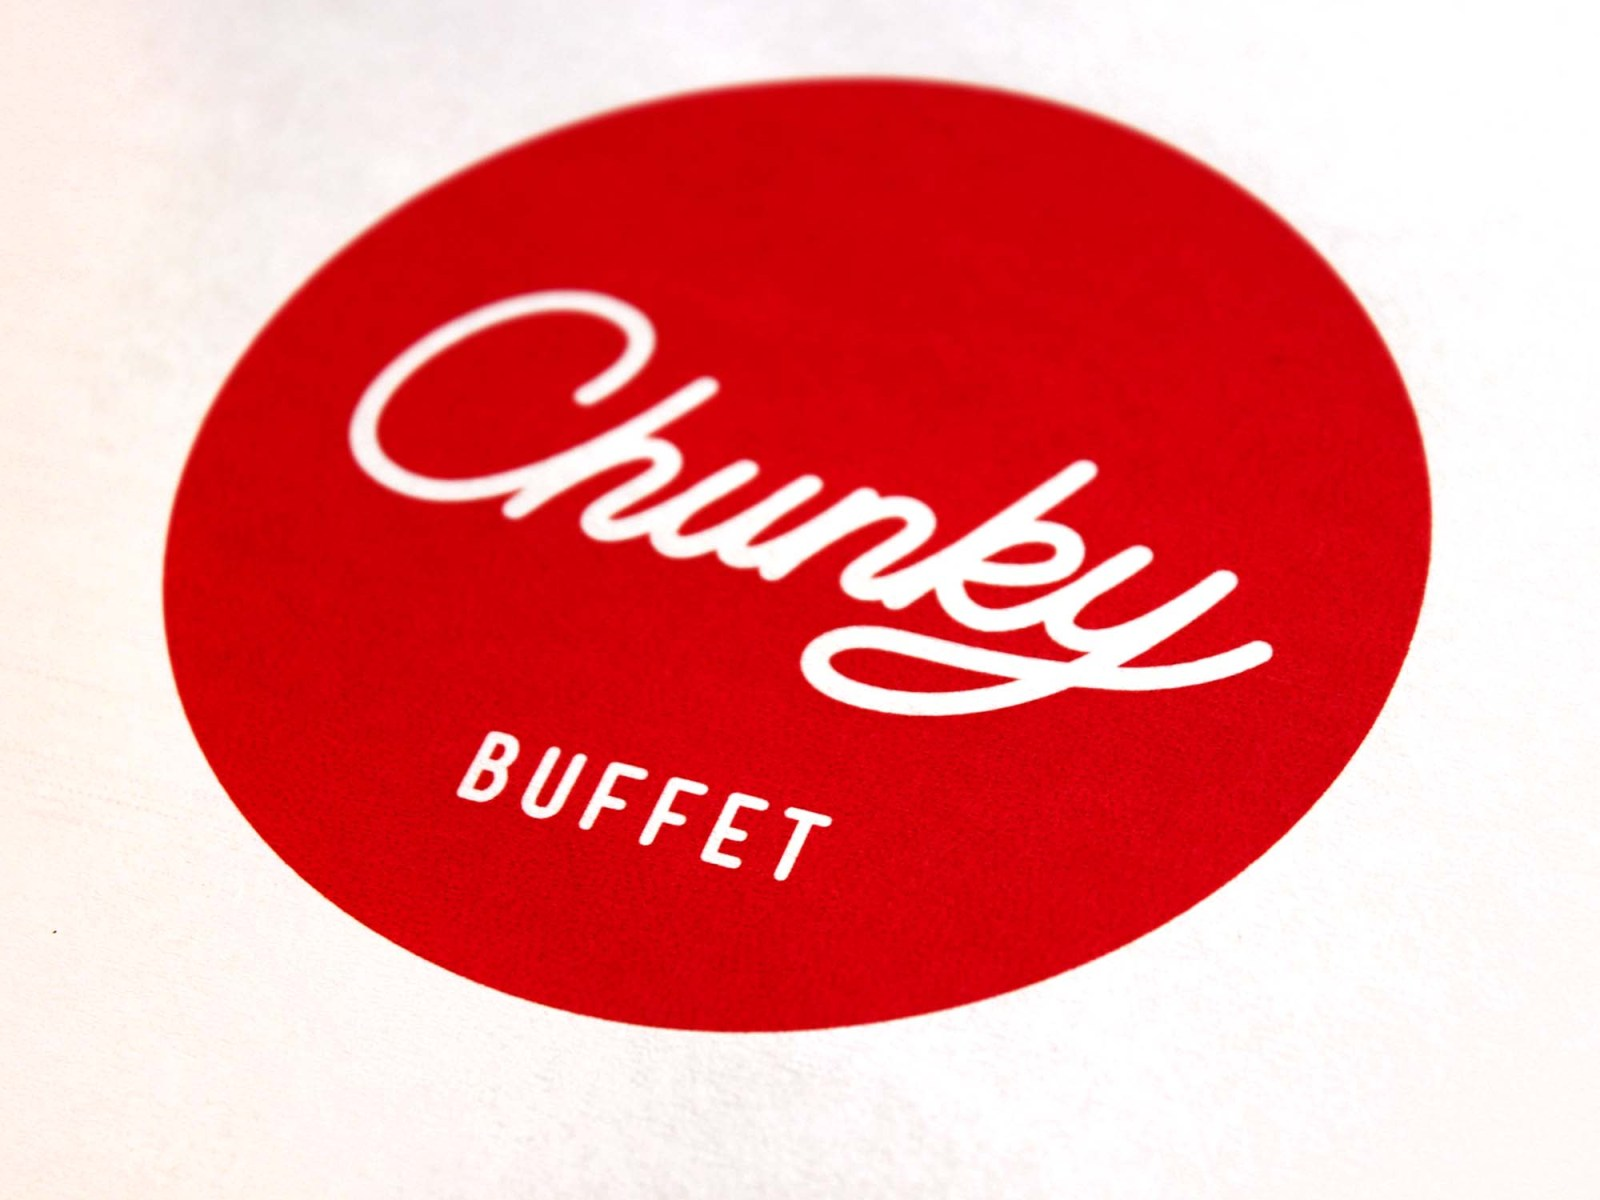 Chunky-Buffet-logo_0004_Layer 13